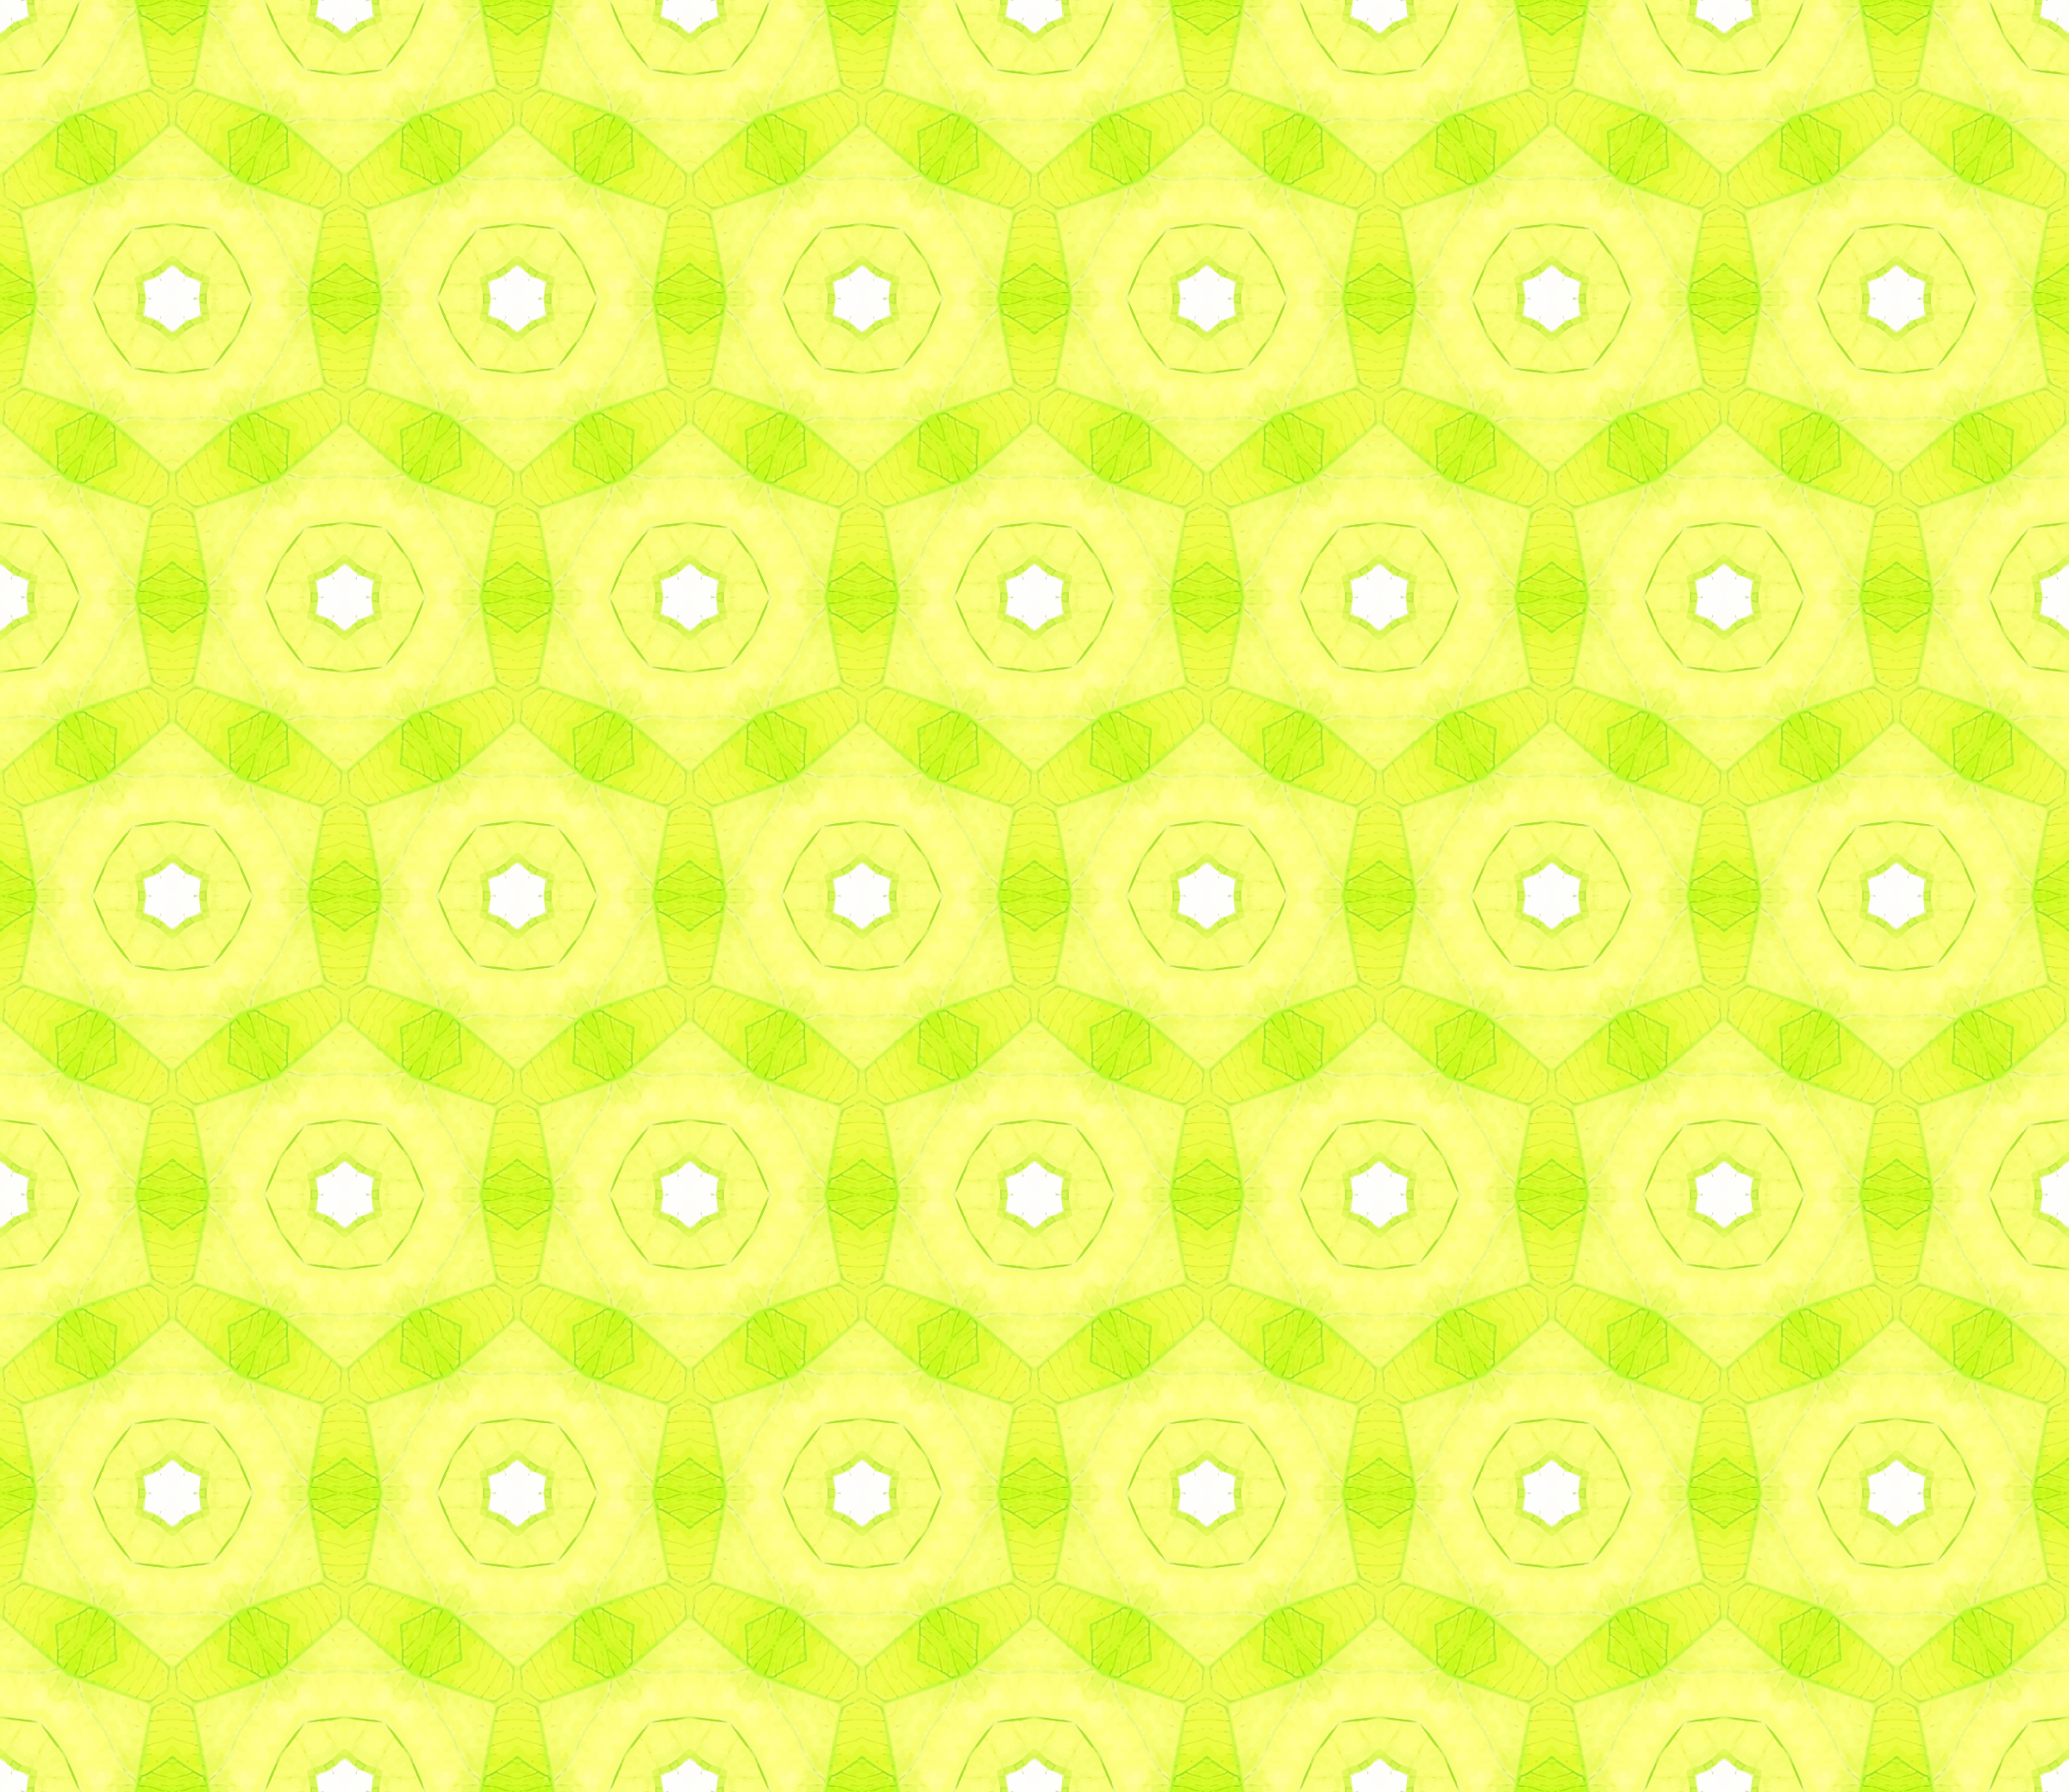 Background pattern 169 (colour 4) by Firkin